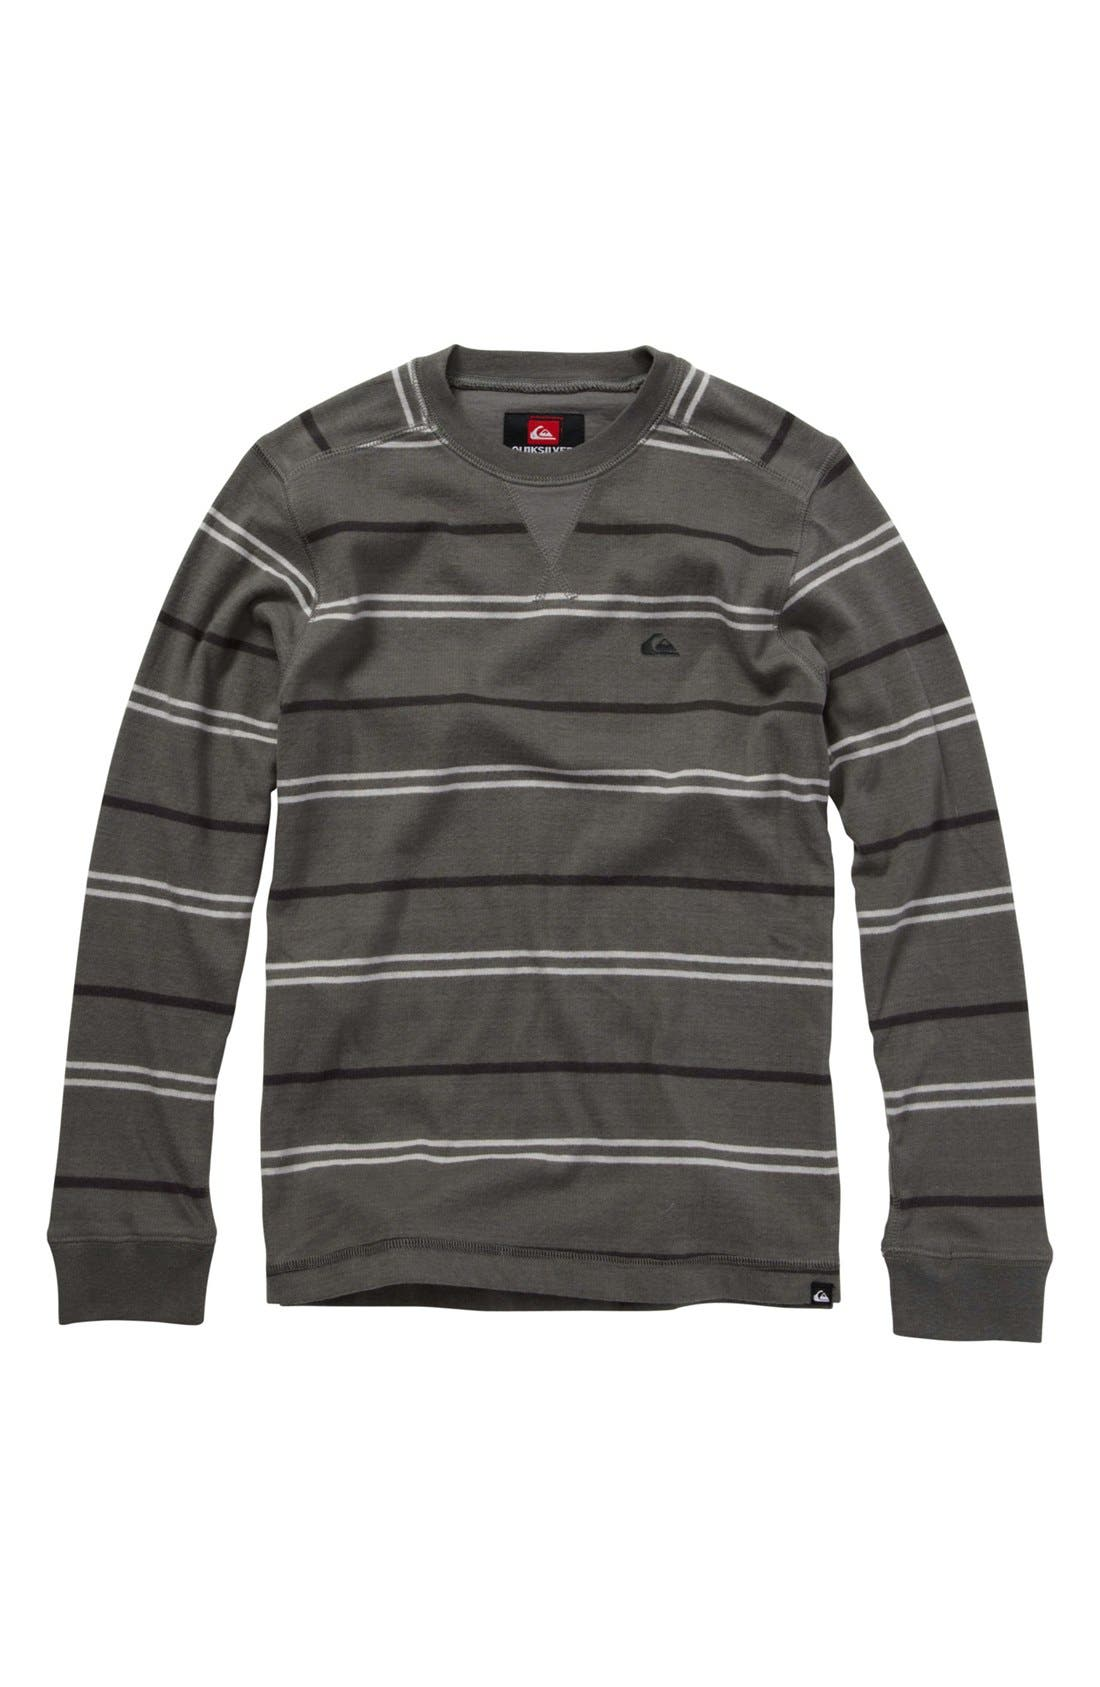 Alternate Image 1 Selected - Quiksilver 'Snit' Sweater (Big Boys)